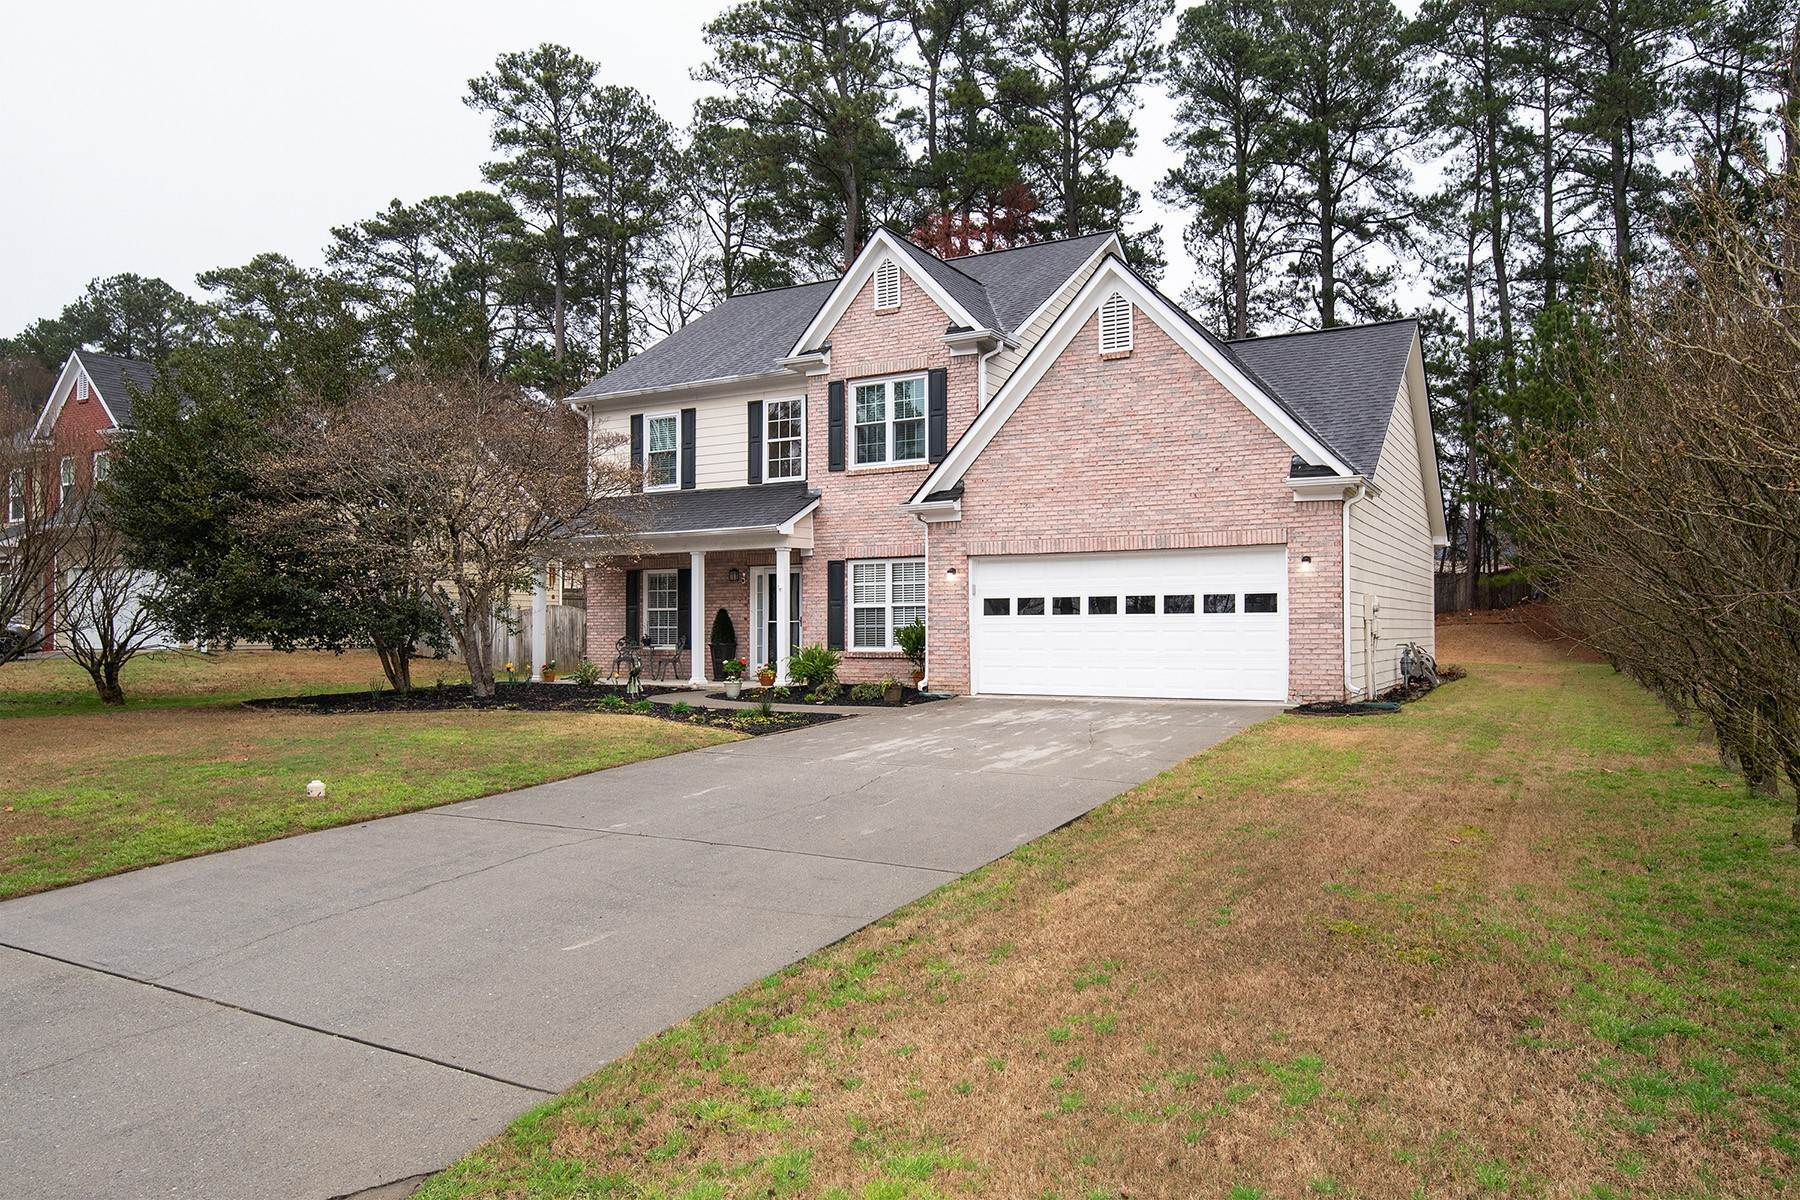 Single Family Homes for Active at Move-in Ready Updated Traditional with Owner Suite on Main 1101 Adah Lane Lawrenceville, Georgia 30043 United States